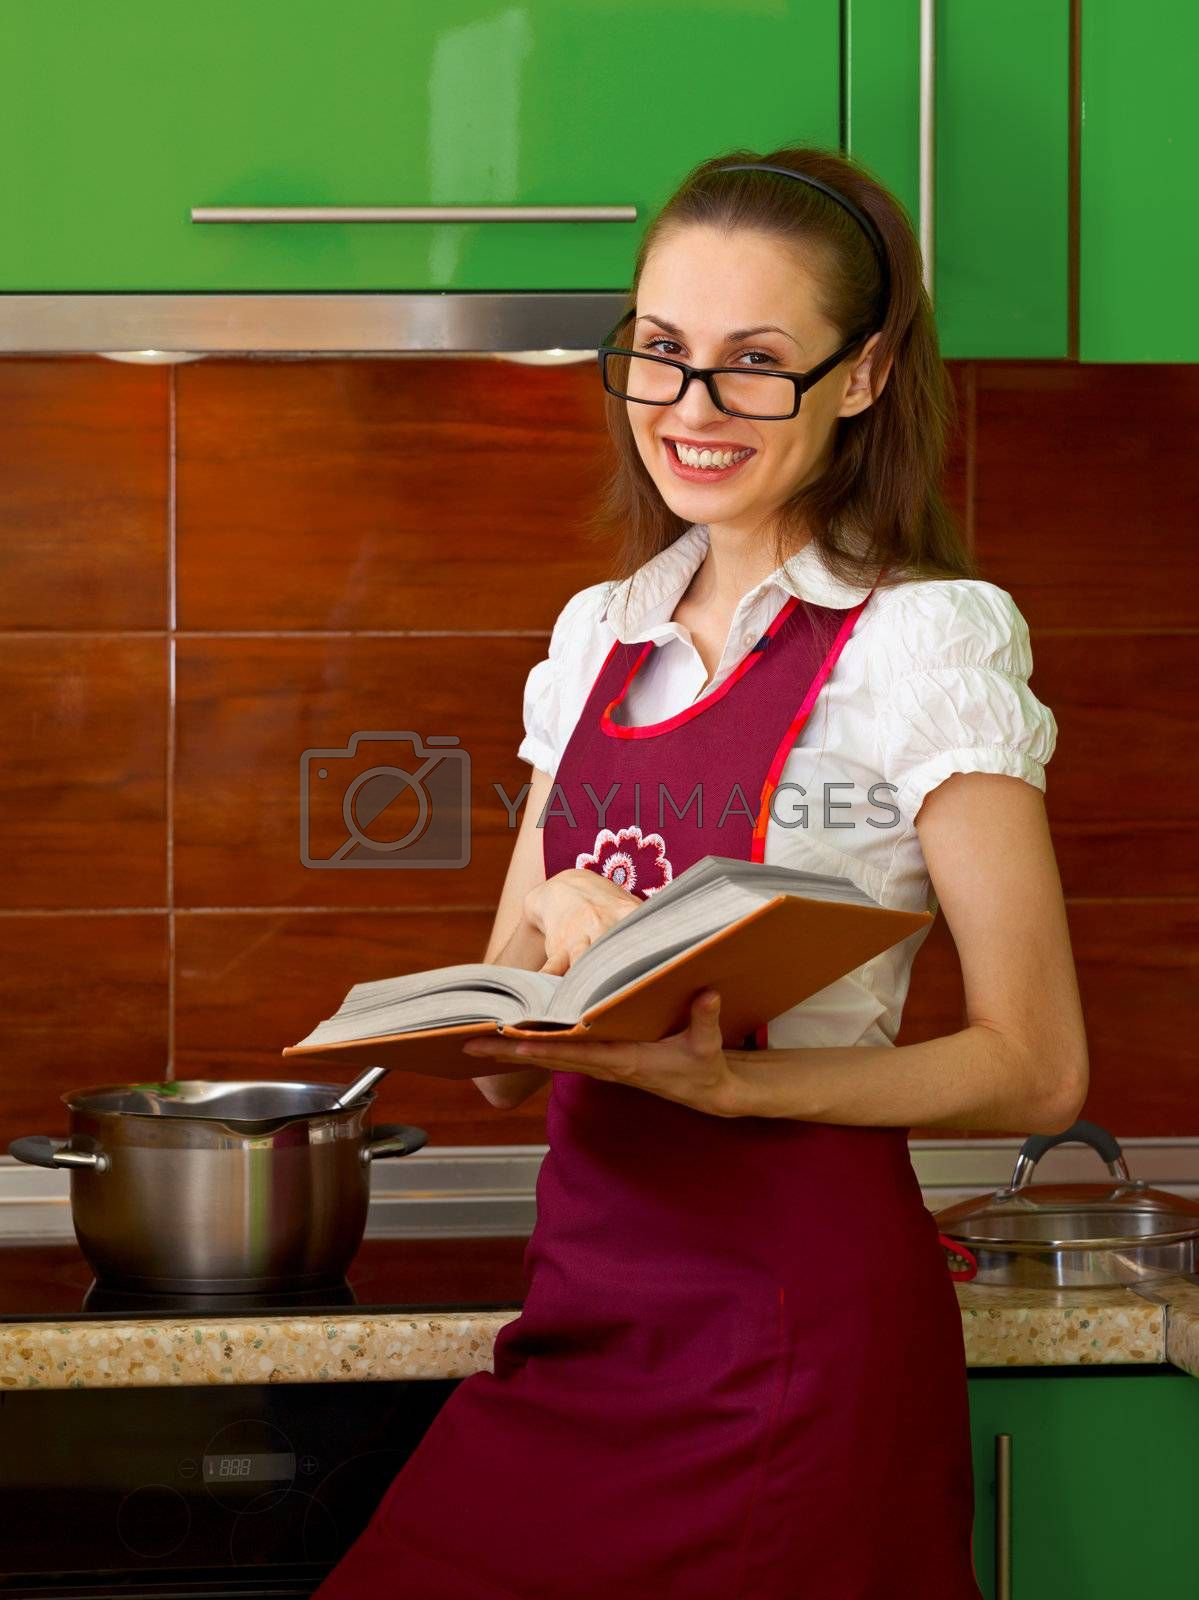 A young woman prepares a meal on kitchen, using the cook book